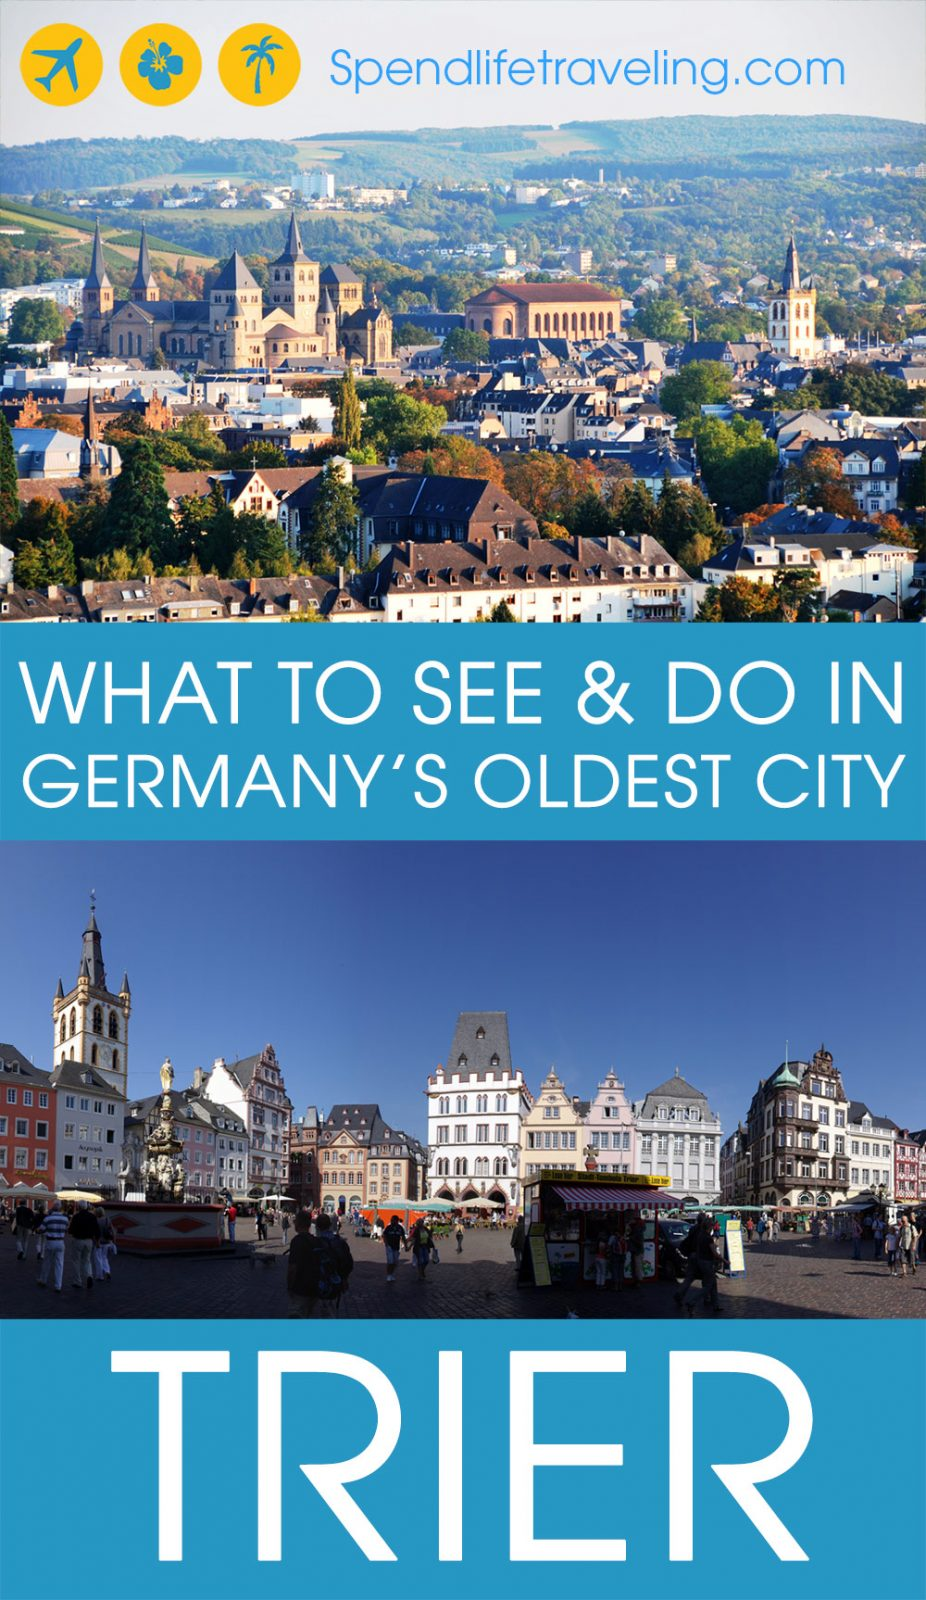 Trier is a beautiful city for anyone who loves history, culture, architecture or just a nice city break. Check out what to do in Trier in this practical city guide with map.